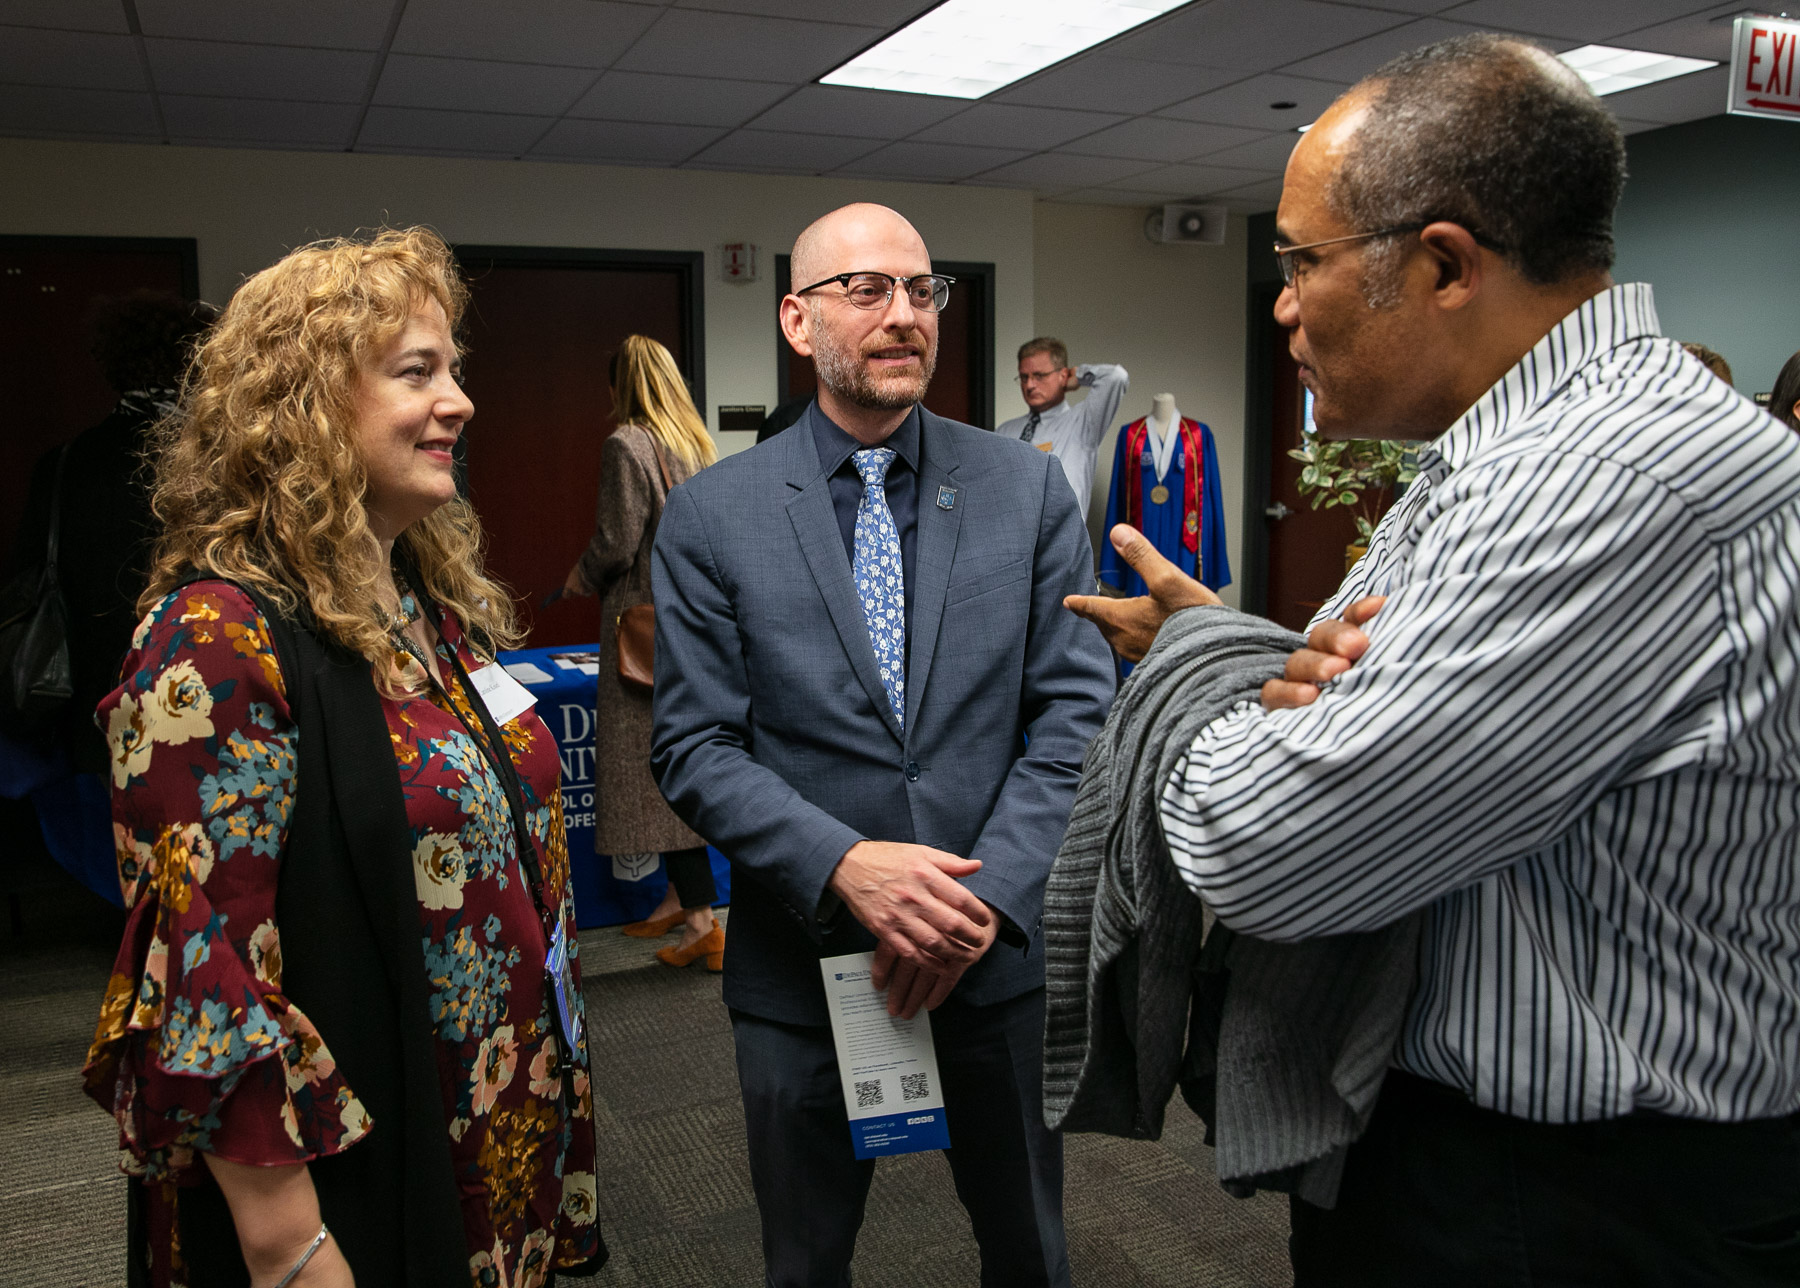 Caroline Kisel, assistant professor, left, and Don Opitz, interim dean for the School of Continuing and Professional Studies, converse with an attendee during the open house event. (DePaul University/Randall Spriggs)